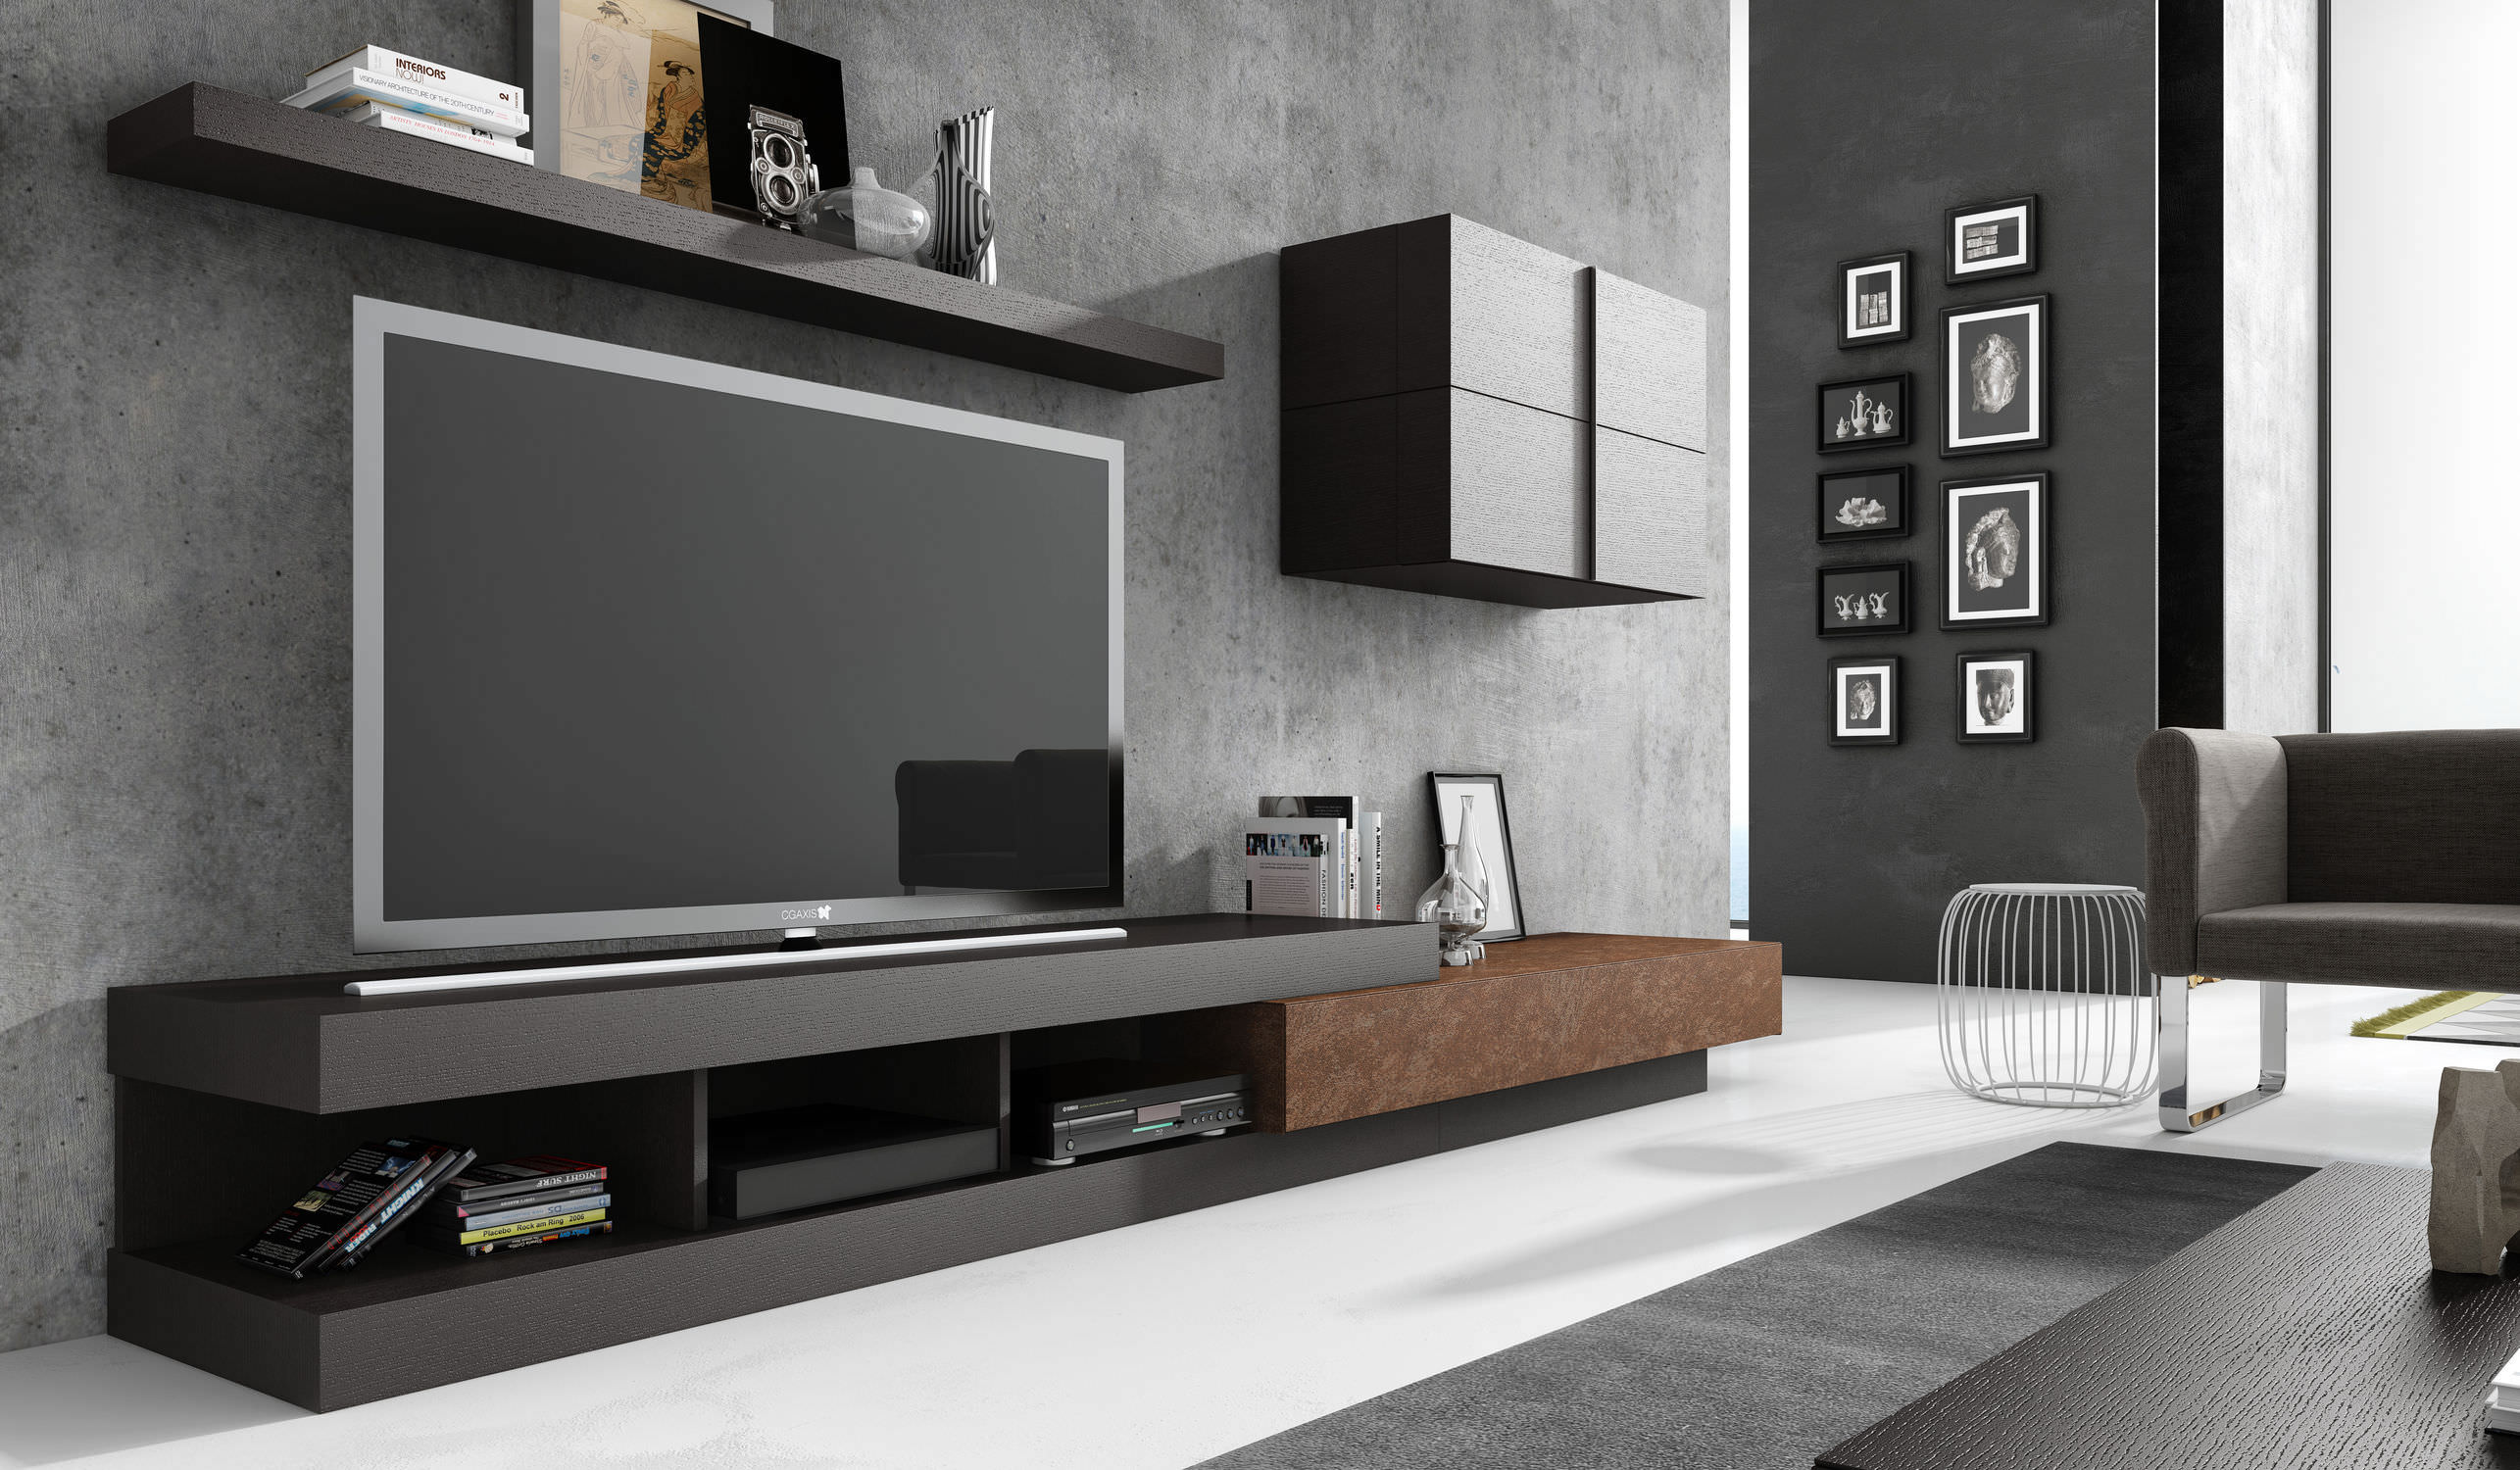 meuble tv contemporain design id es de d coration. Black Bedroom Furniture Sets. Home Design Ideas